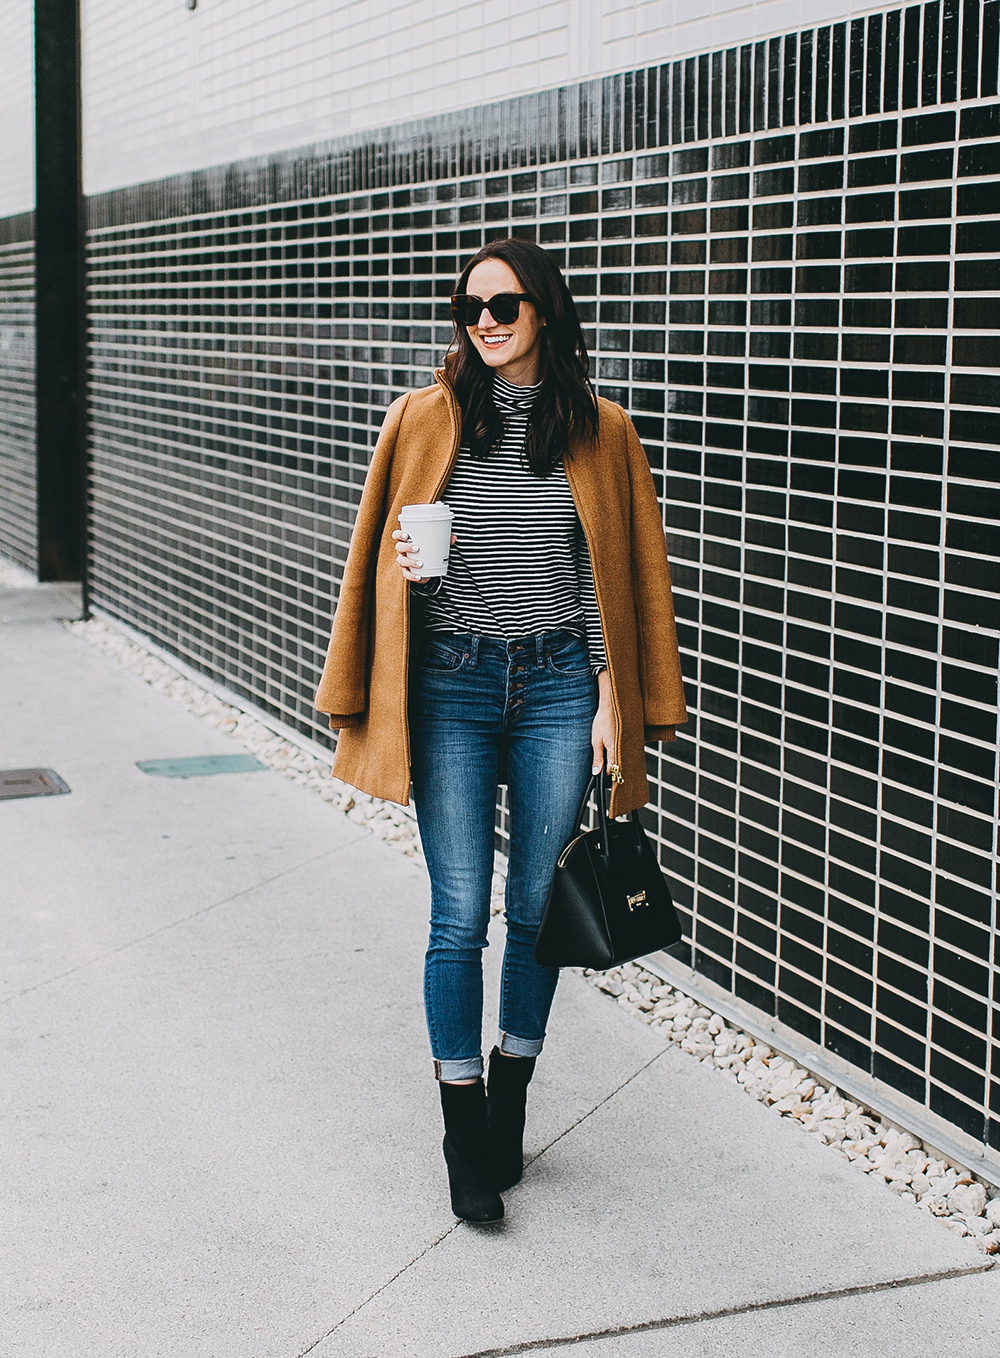 livvyland-blog-olivia-watson-austin-texas-fashion-blogger-j-crew-camel-winter-coat-striped-turtleneck-mid-calf-ankle-booties-9